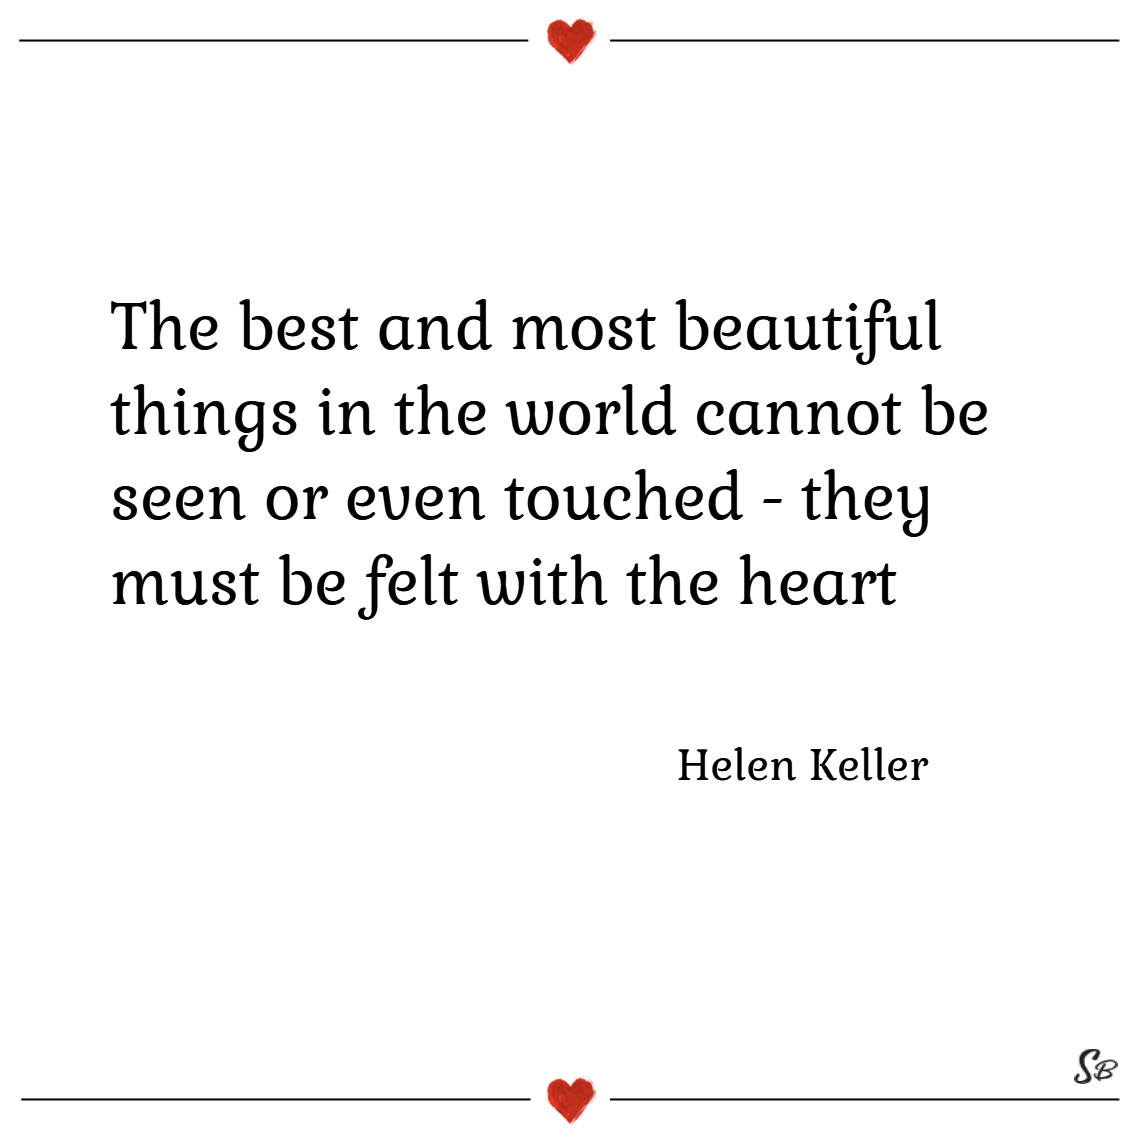 The best and most beautiful things in the world cannot be seen or even touched they must be felt with the heart. – helen keller